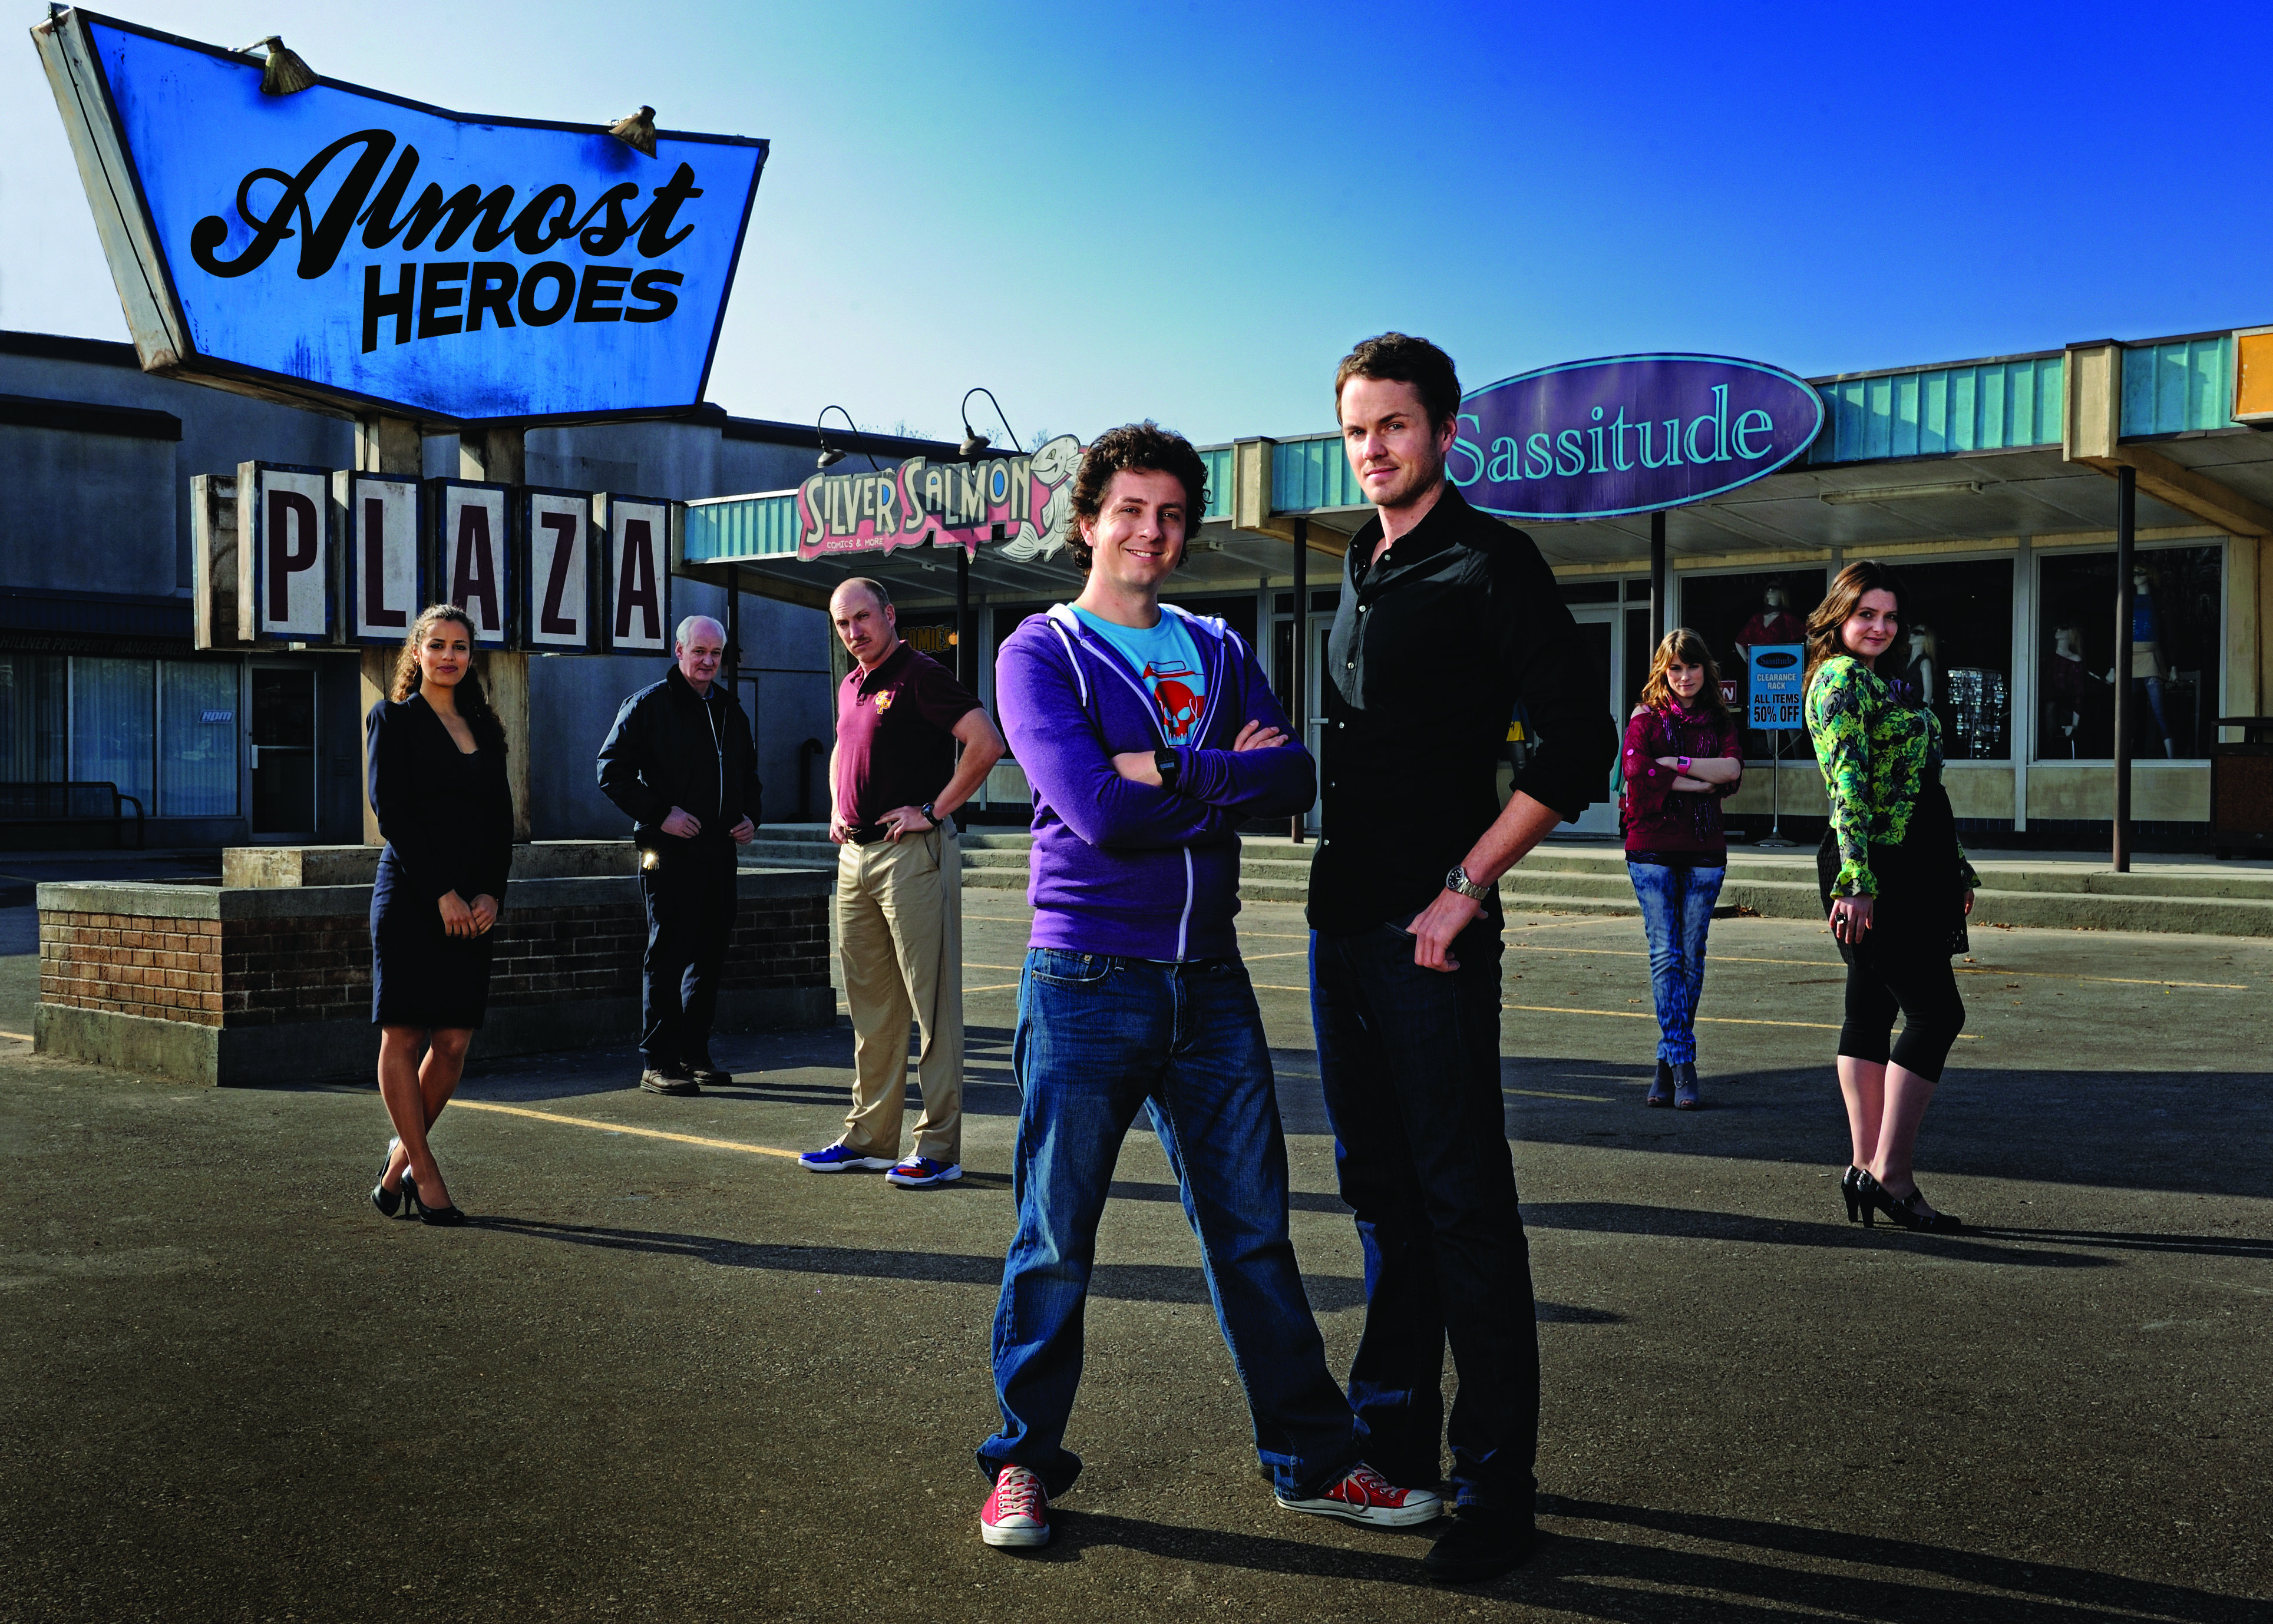 Almost Heroes (2011)